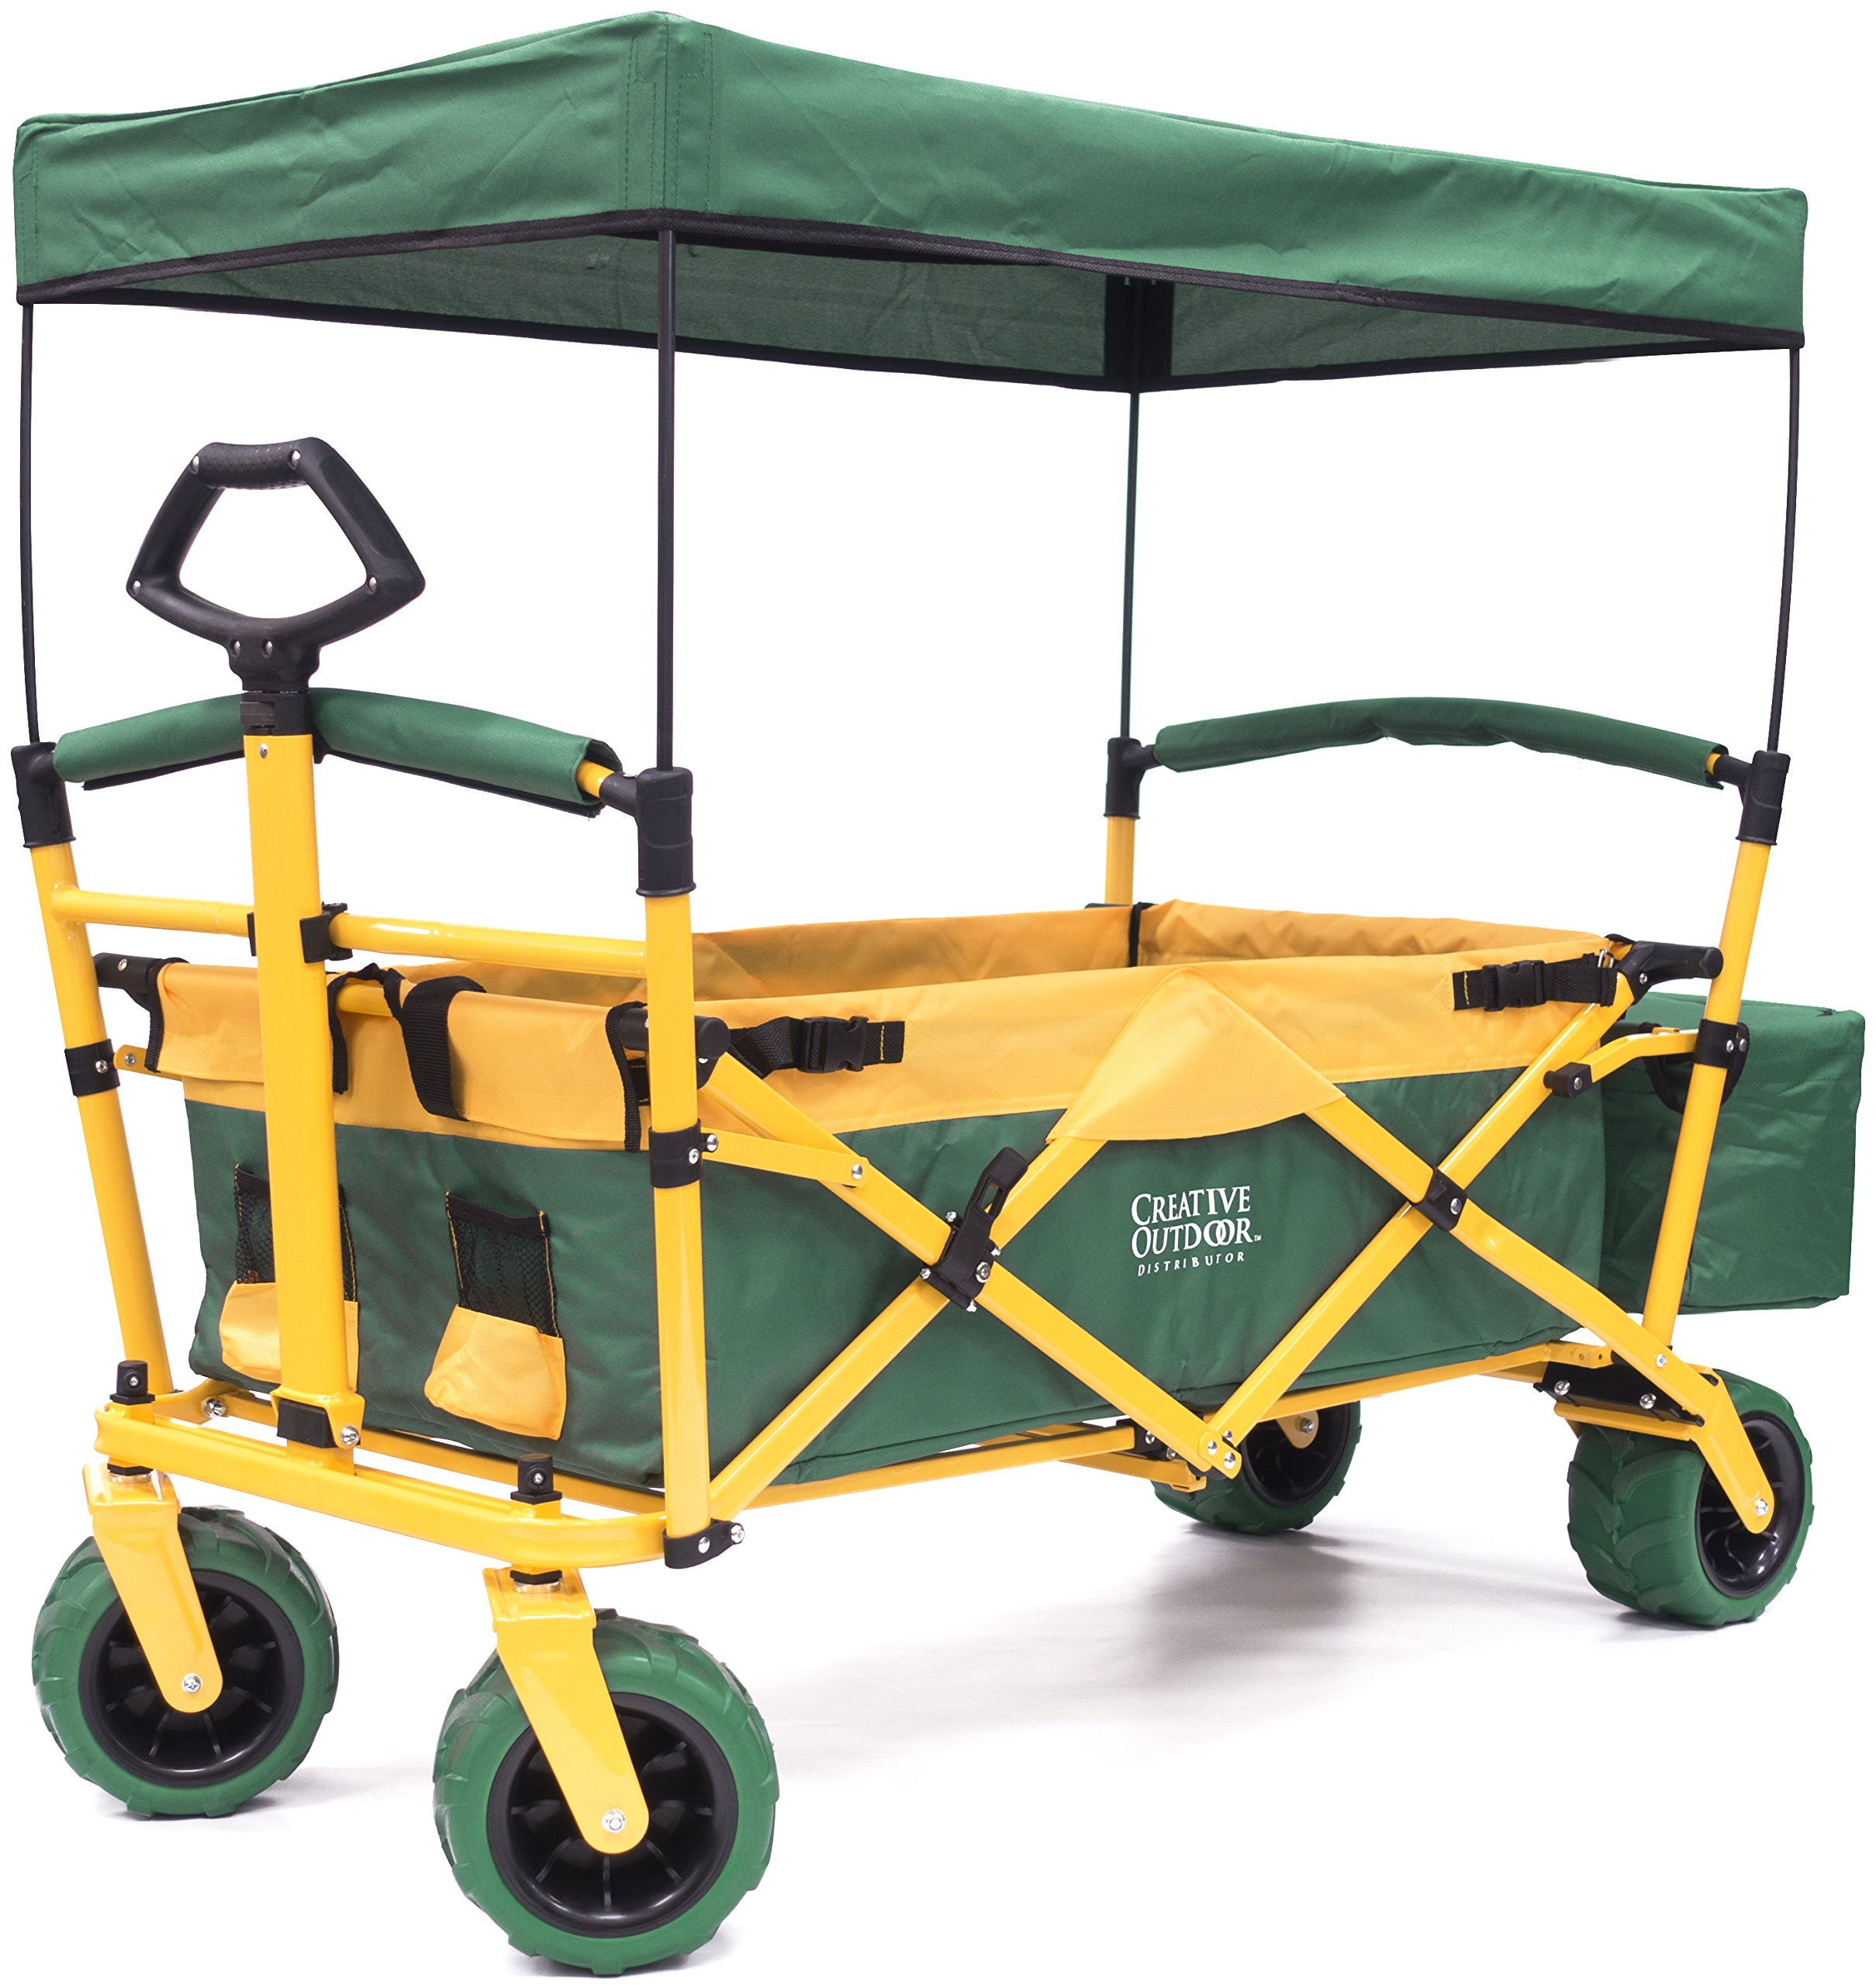 Folding SPORTS Wagon with All-Terrain Rubber Tires, Removable Canopy, and Storage Basket + FREE Cooler (Green fabric/Yellow frame) by Creative Outdoor Distributor